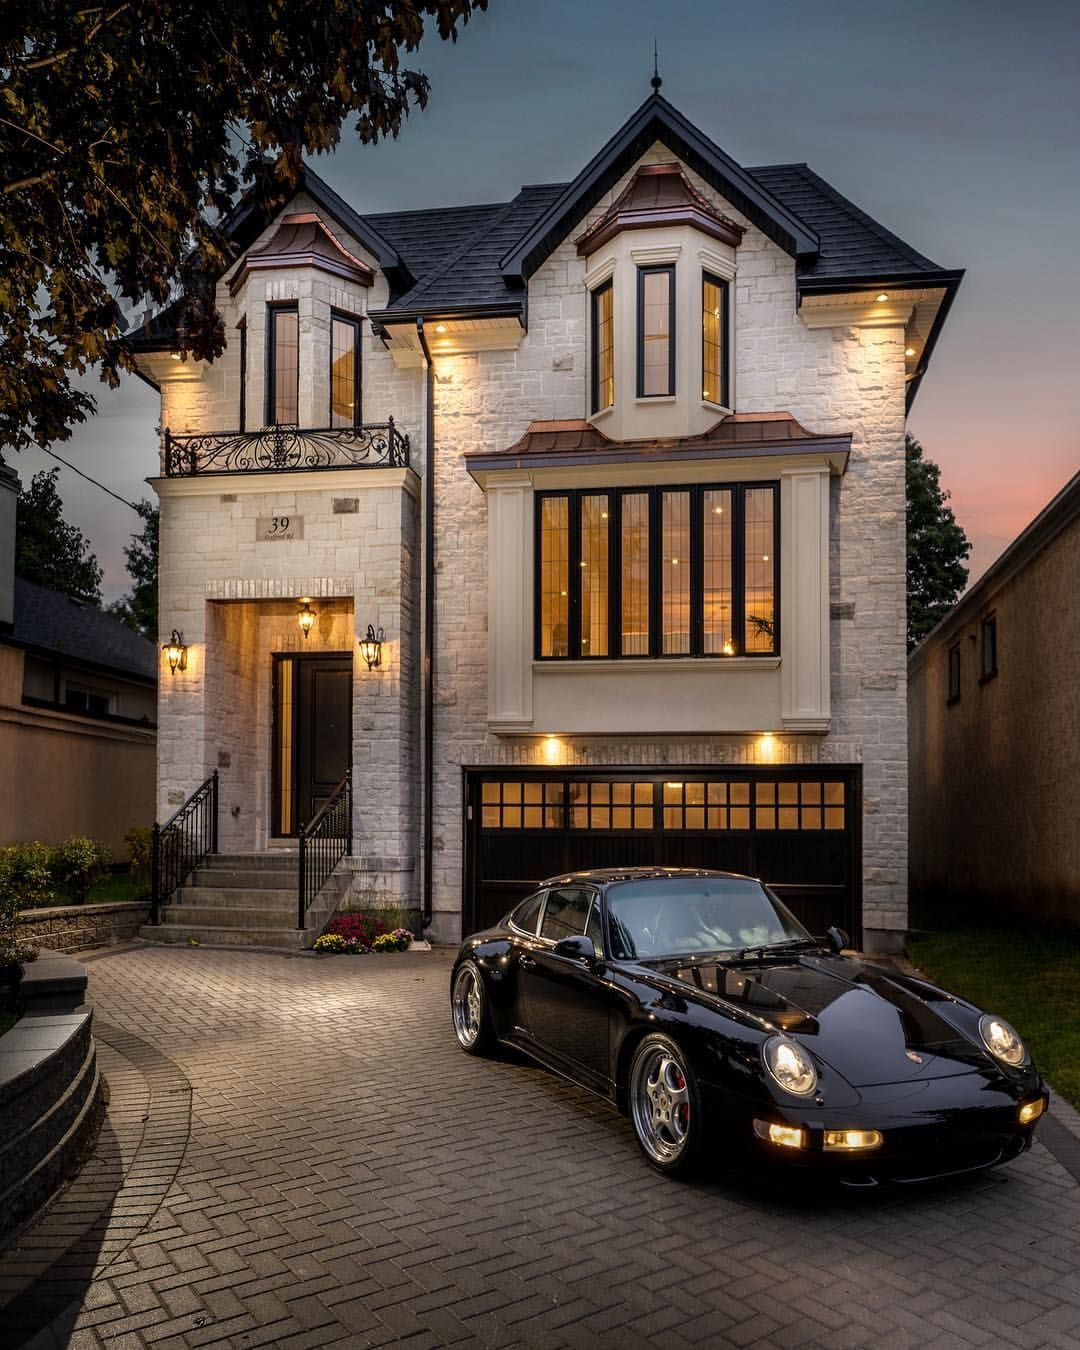 Awesome Luxury Homes Videos Dream Houses Modern Houses Dÿ Houses Instagram Posts Videos In 2020 Exterior House Colors Exterior Design House Exterior